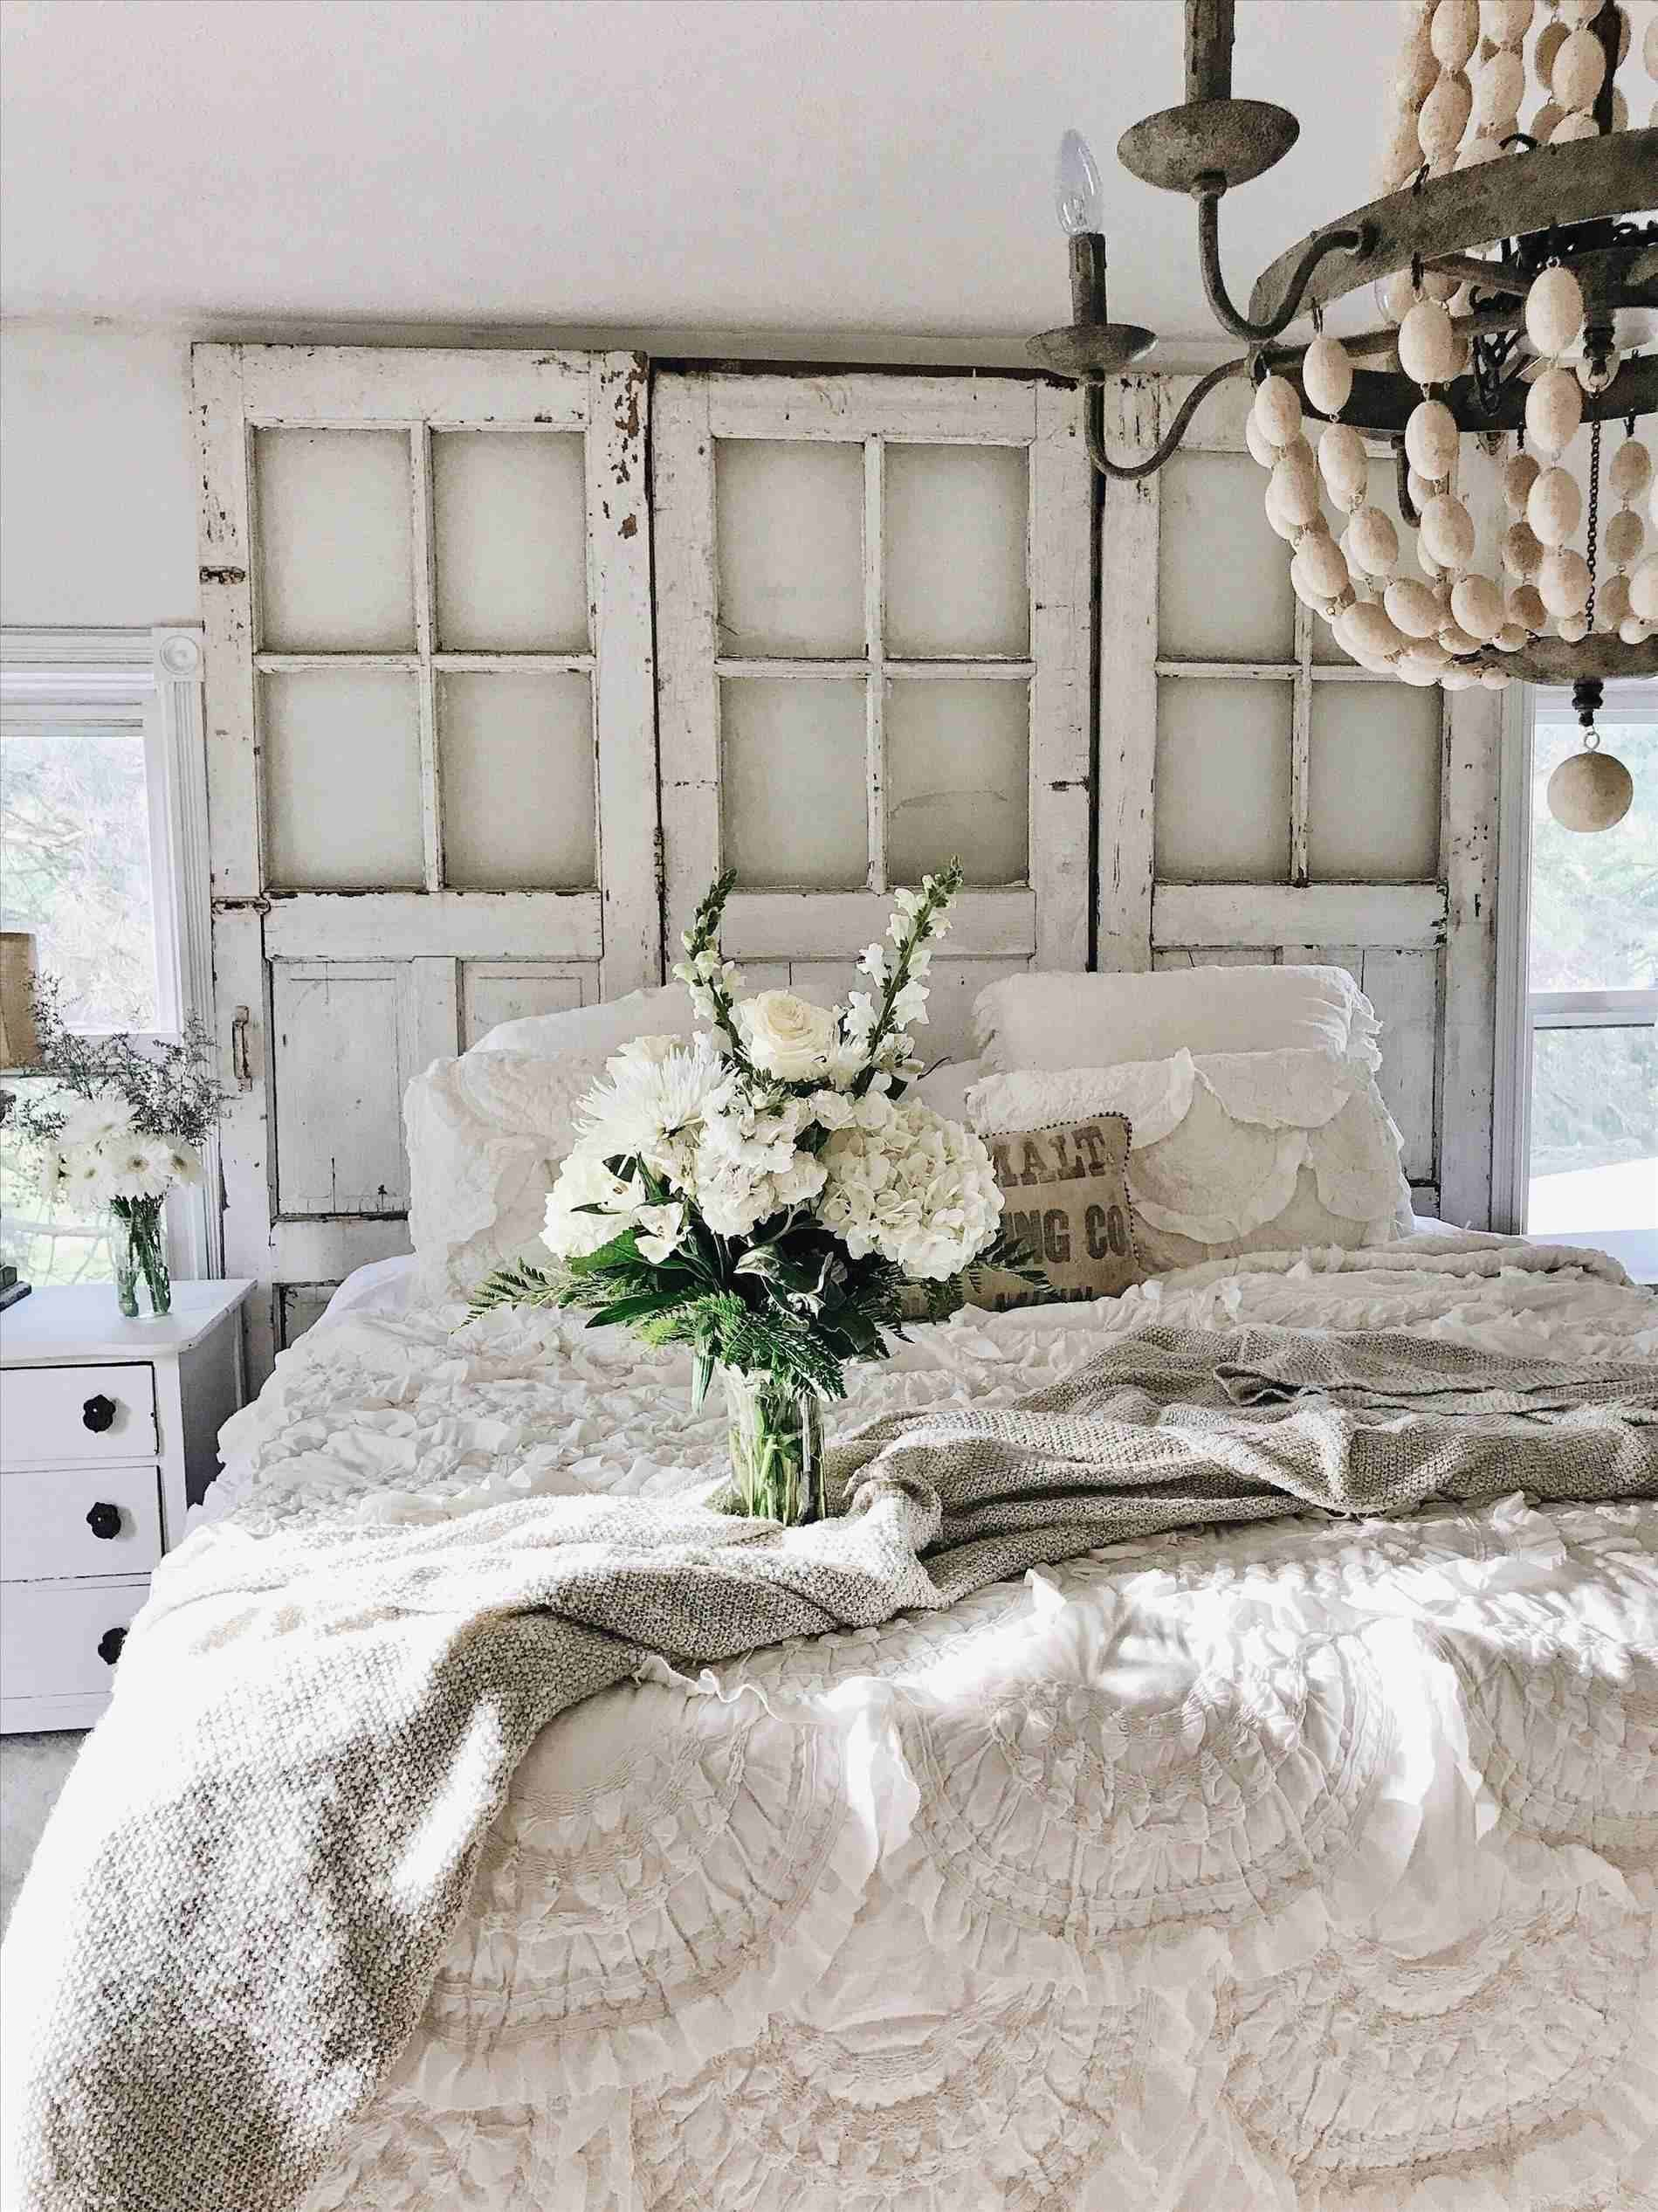 Shabby Chic Bedroom bedroom, shabby chic bedroom designs